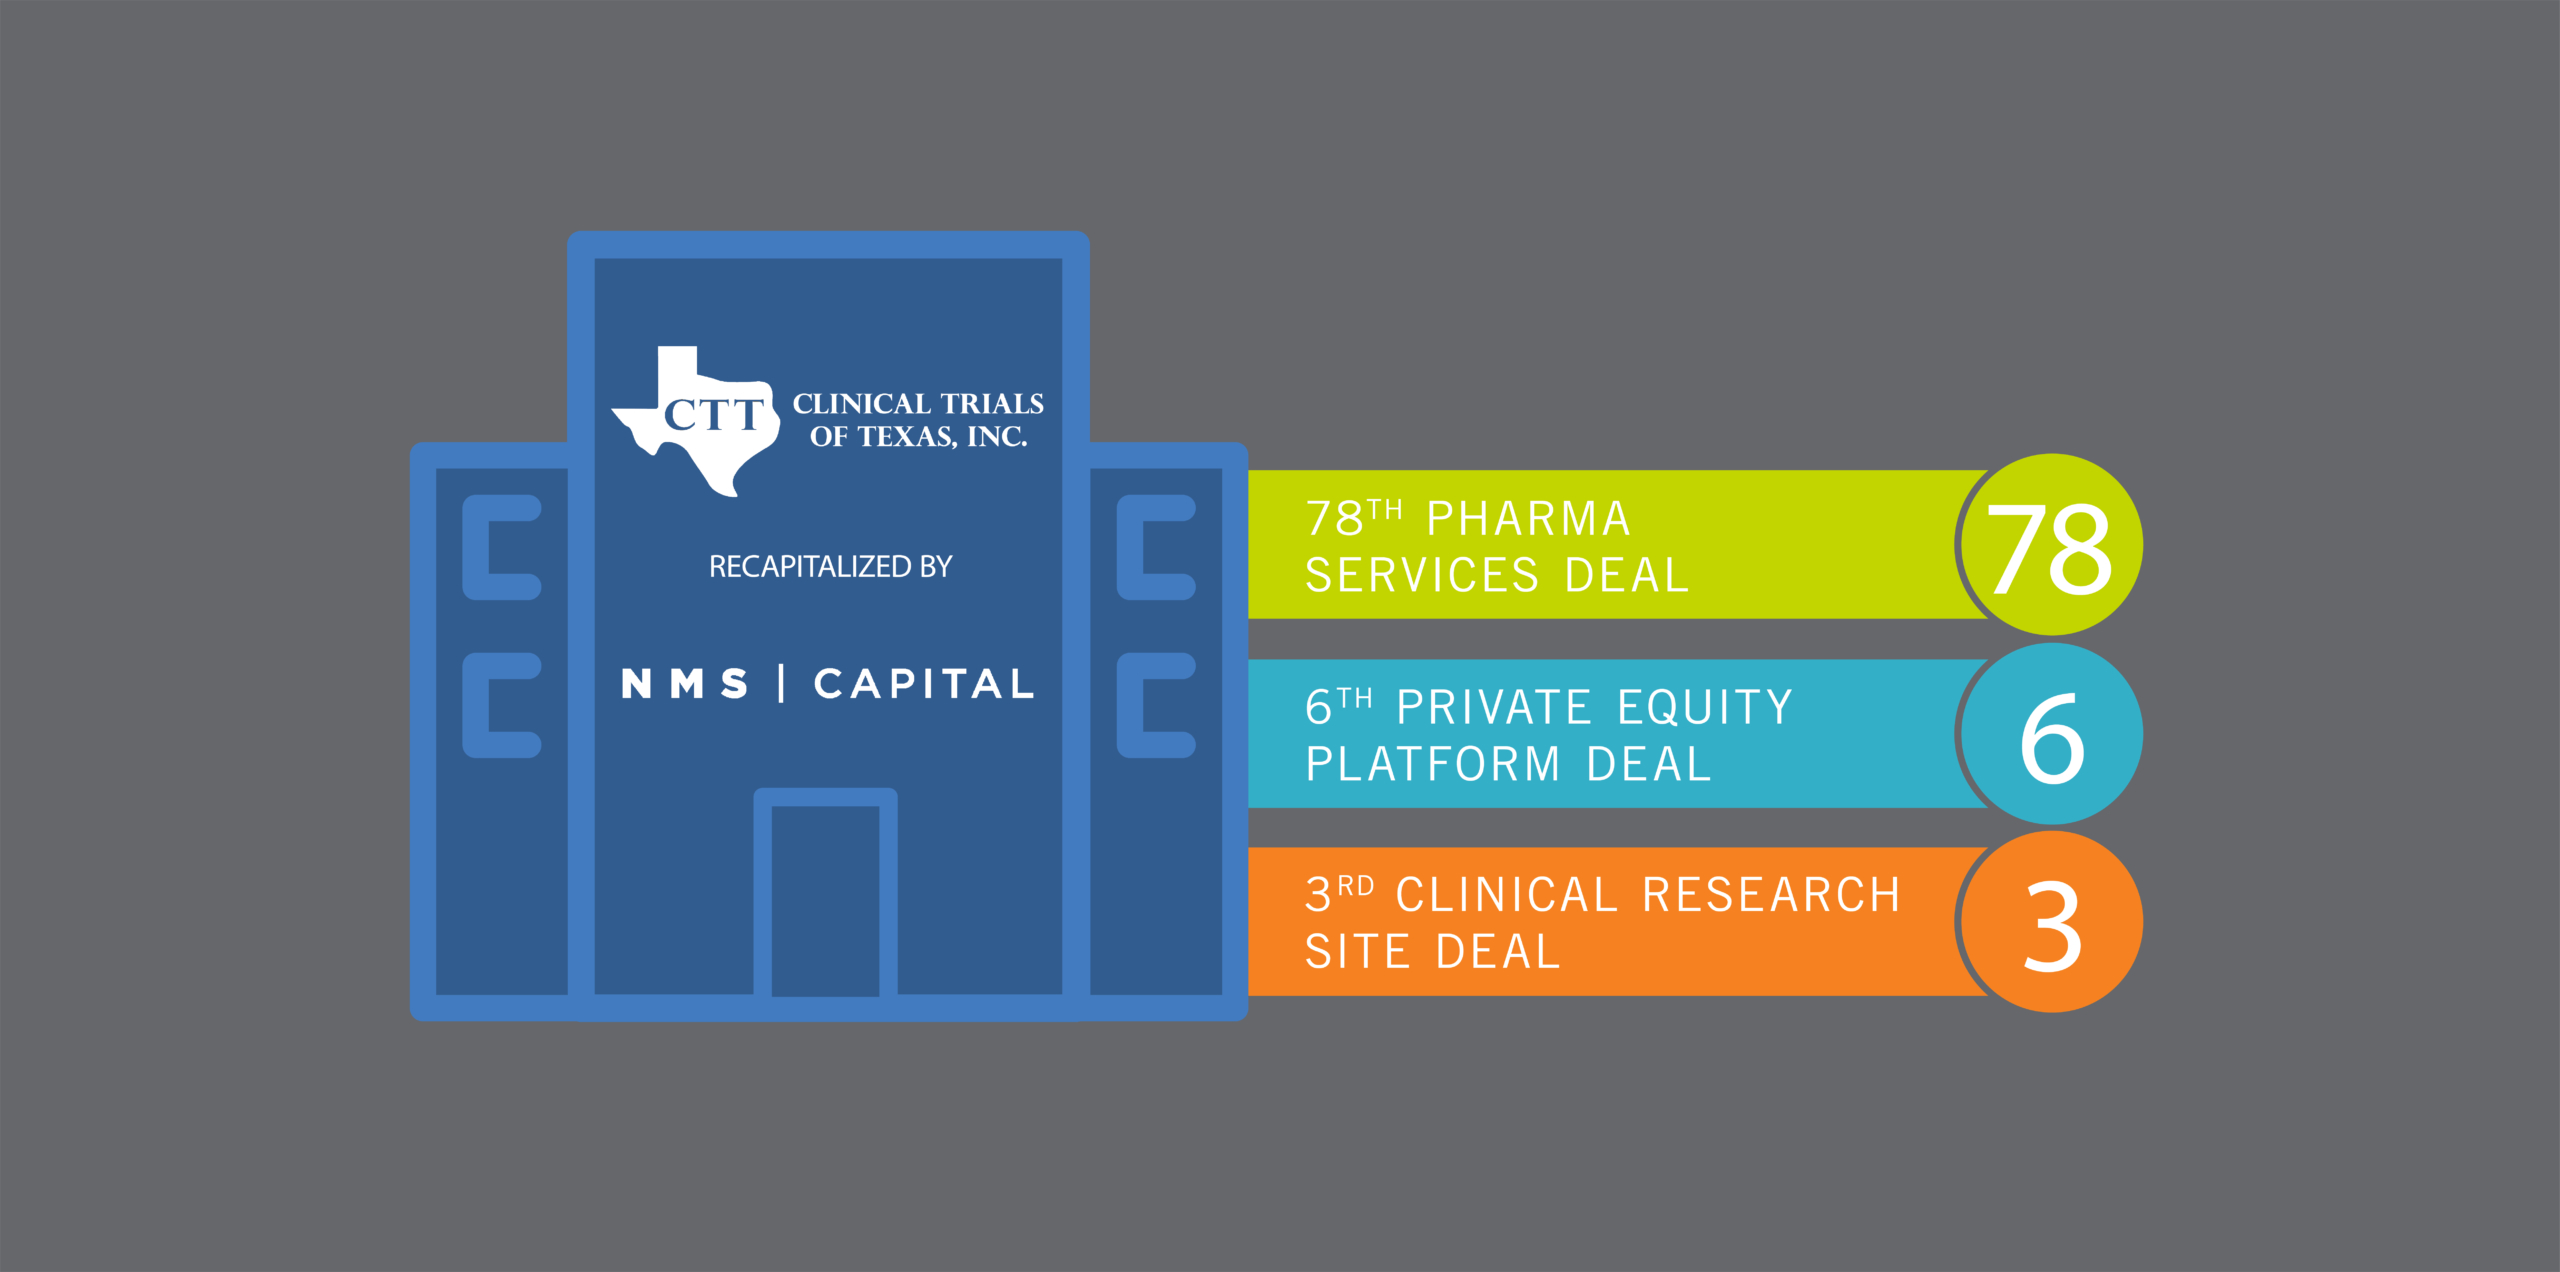 Clinical Trials of Texas recapitalized by NMS Capital to form new Flourish Research clinical research site platform